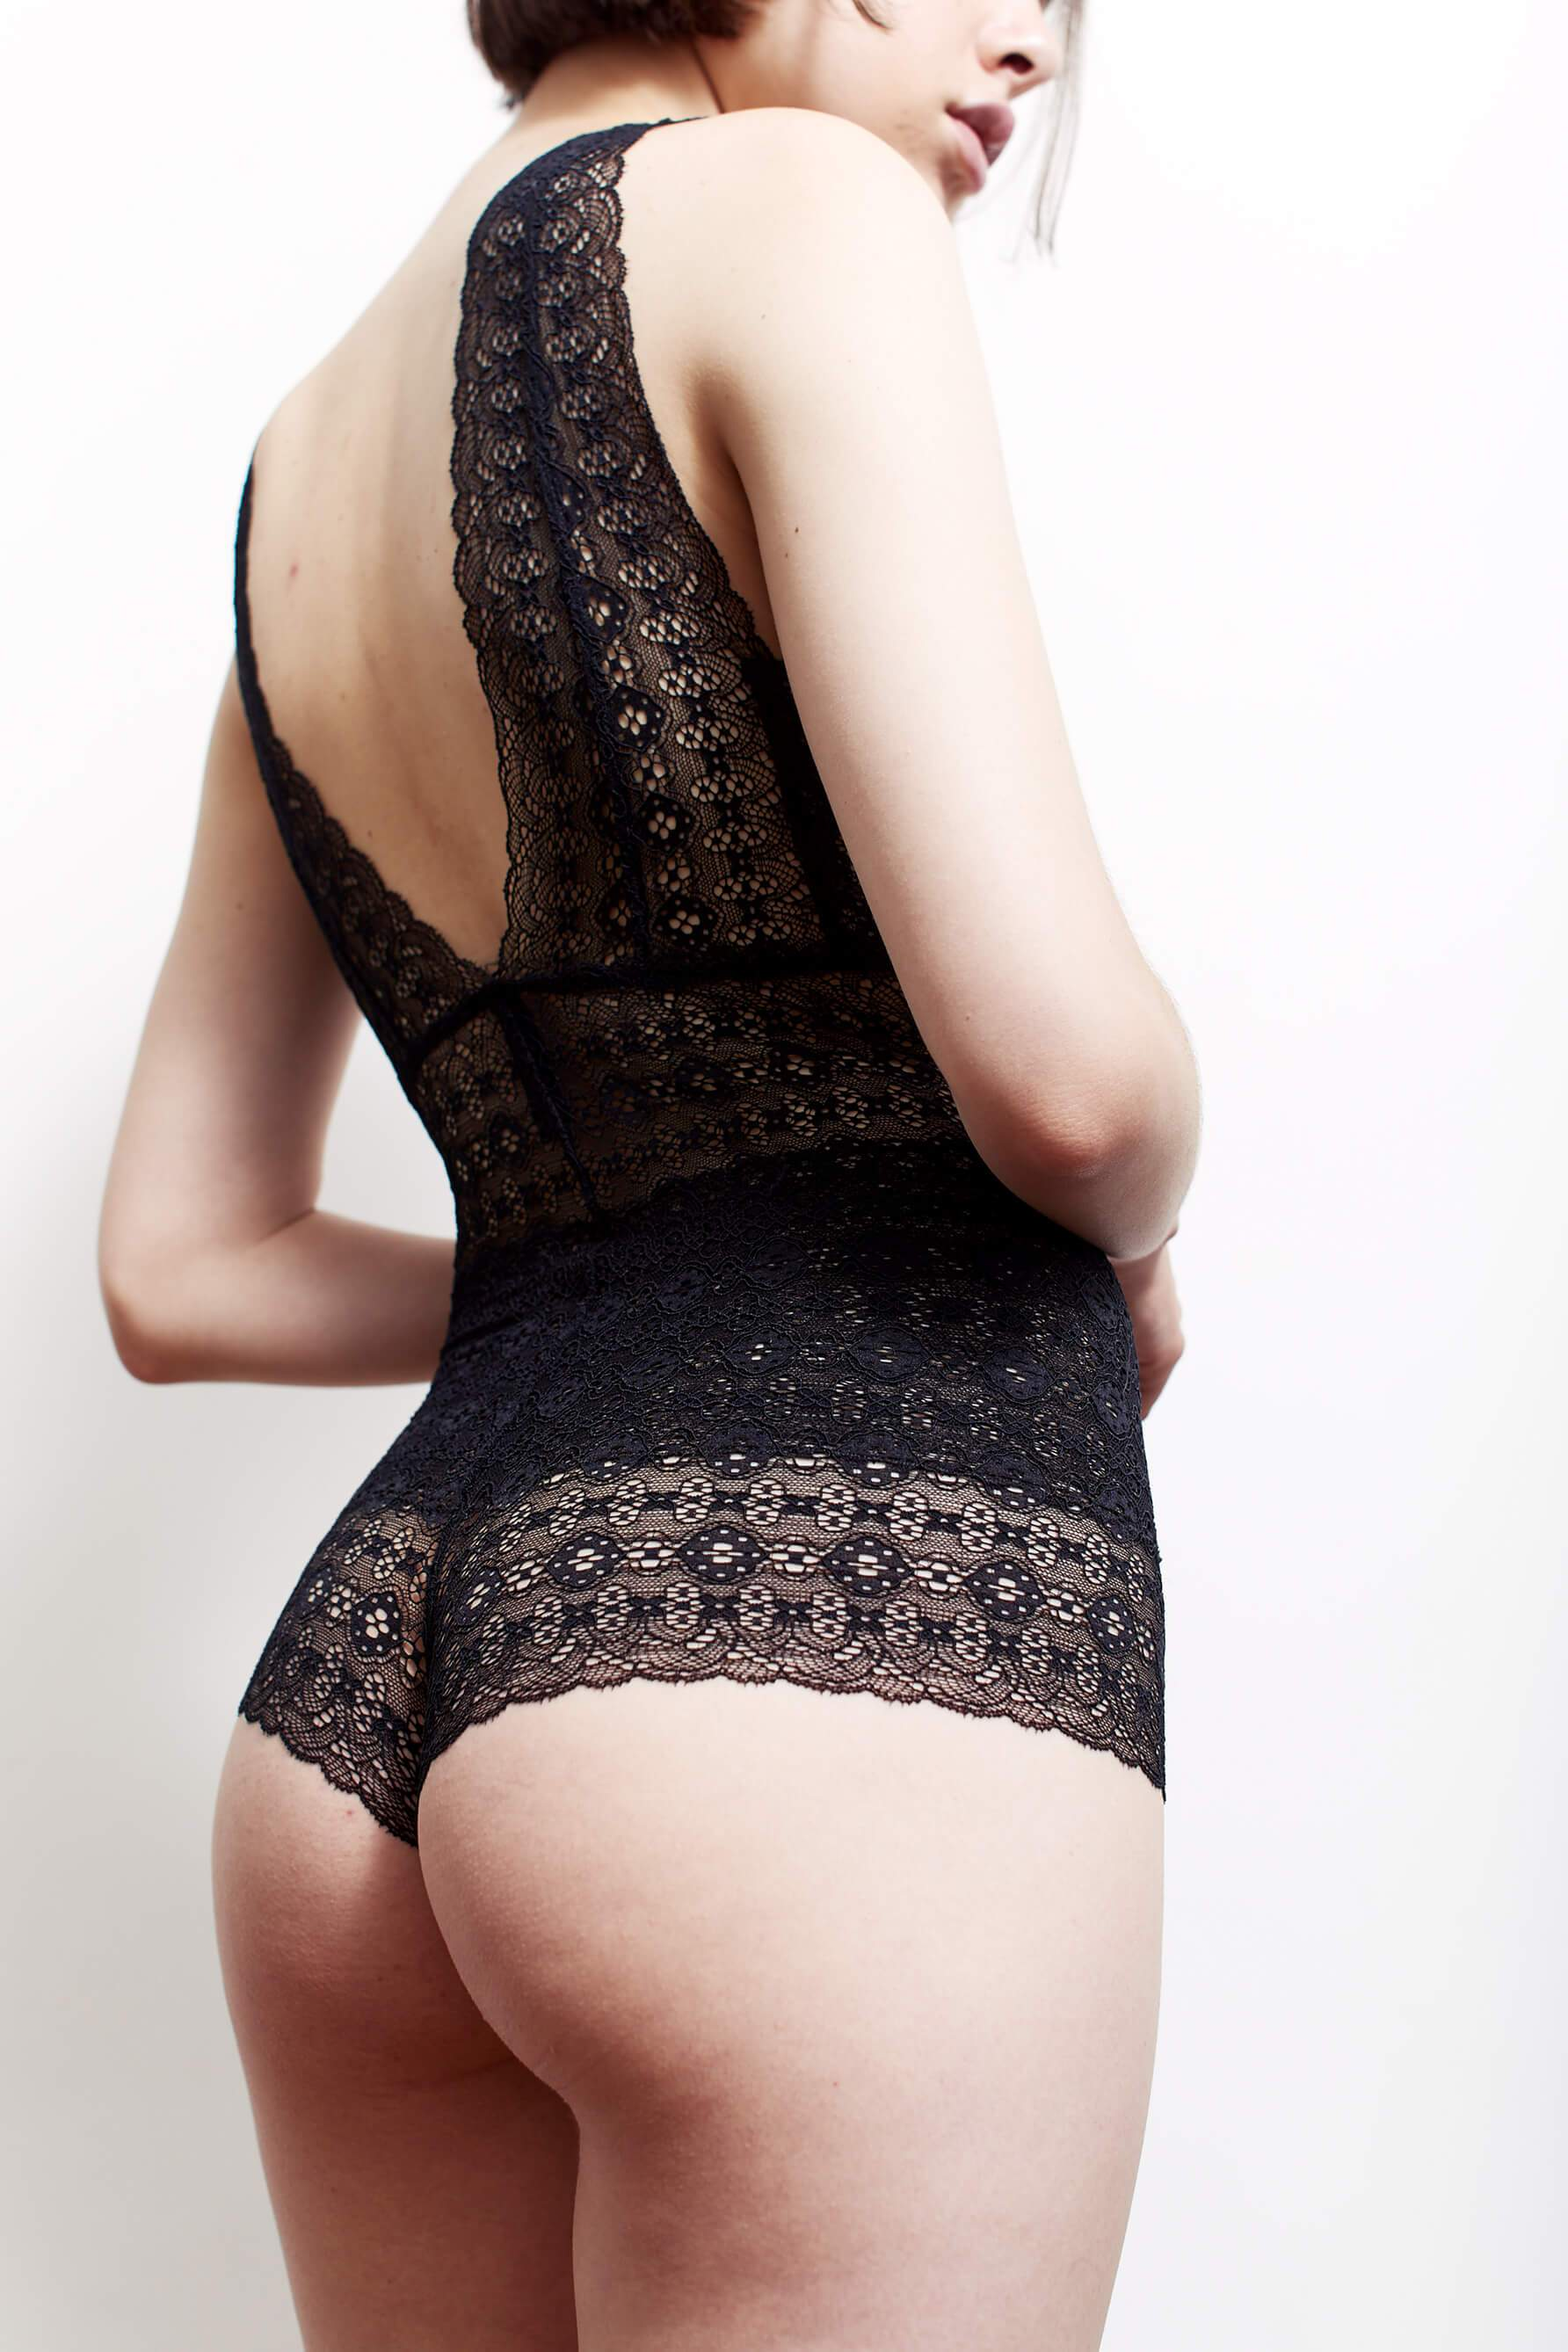 Anna stretch lace bodysuit from Paloma Casile on model, back view